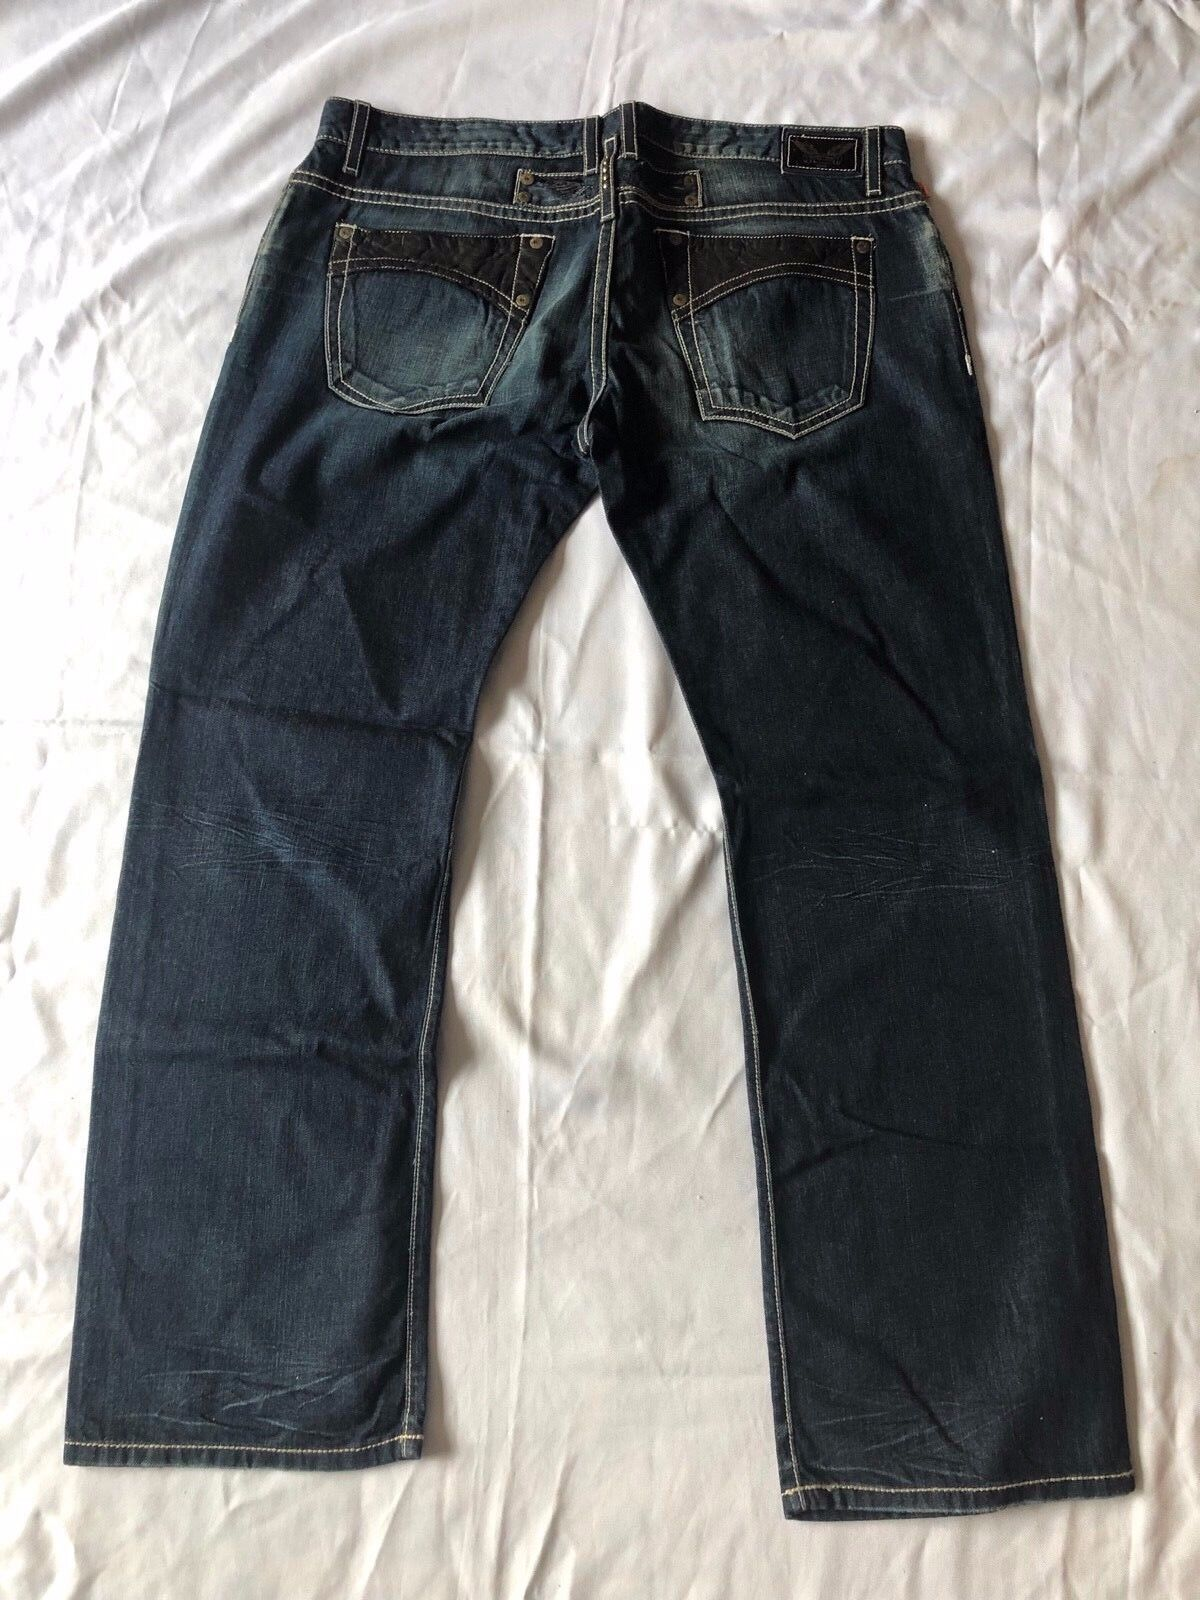 New Men's ROBIN'S JEAN Sz 42 LEATHER  Fitted Boot Leg Jeans